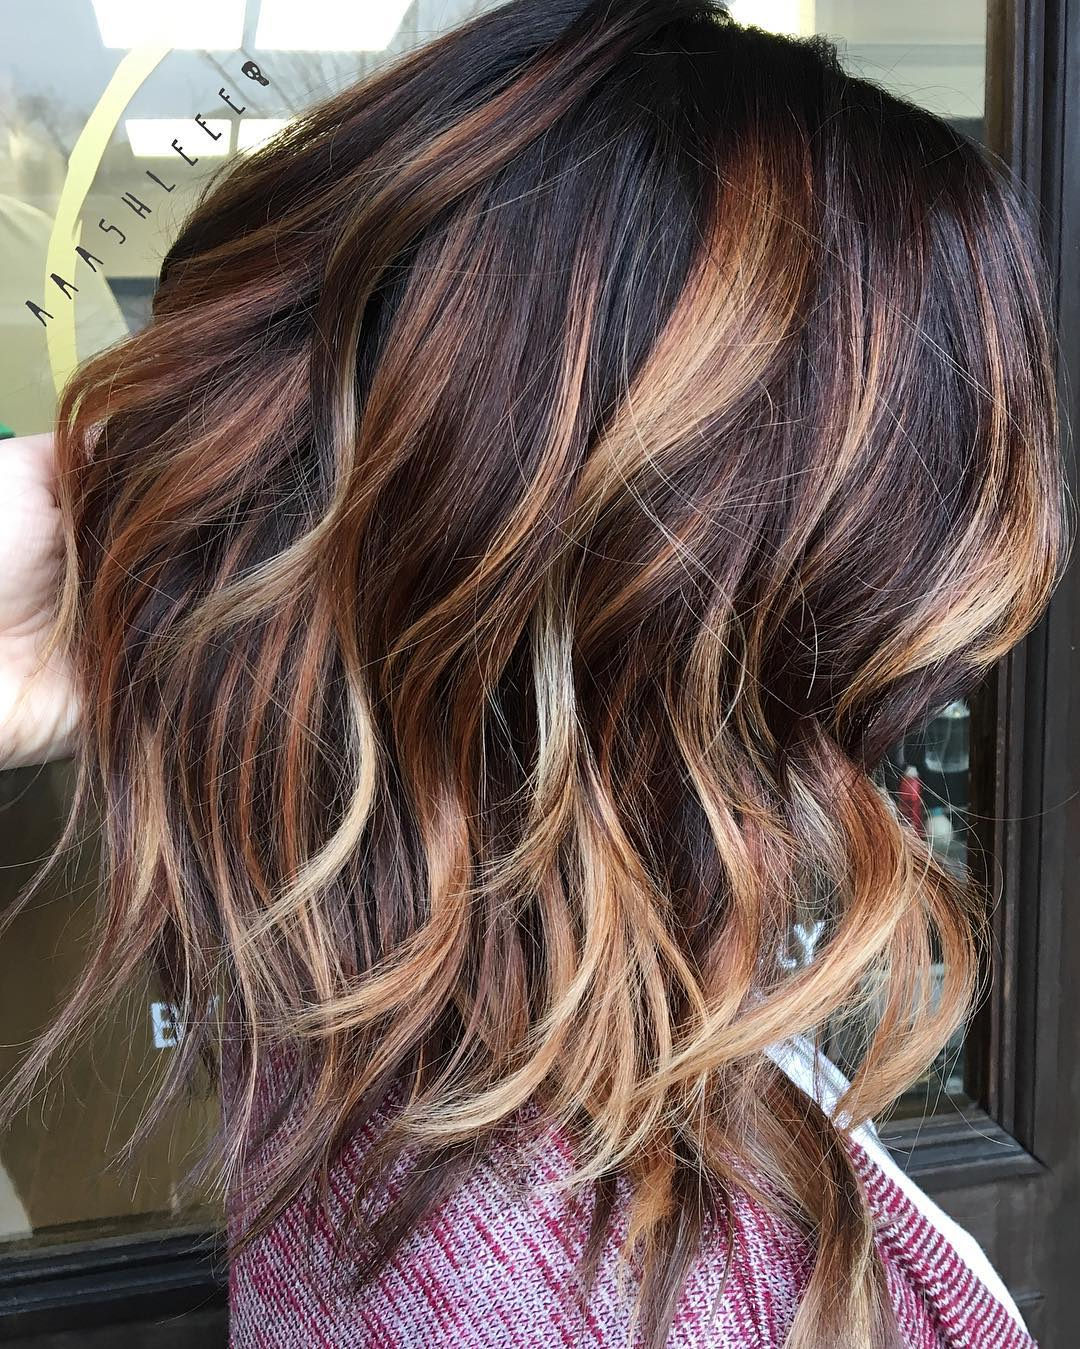 Lob with Curls for Medium Thick Hair